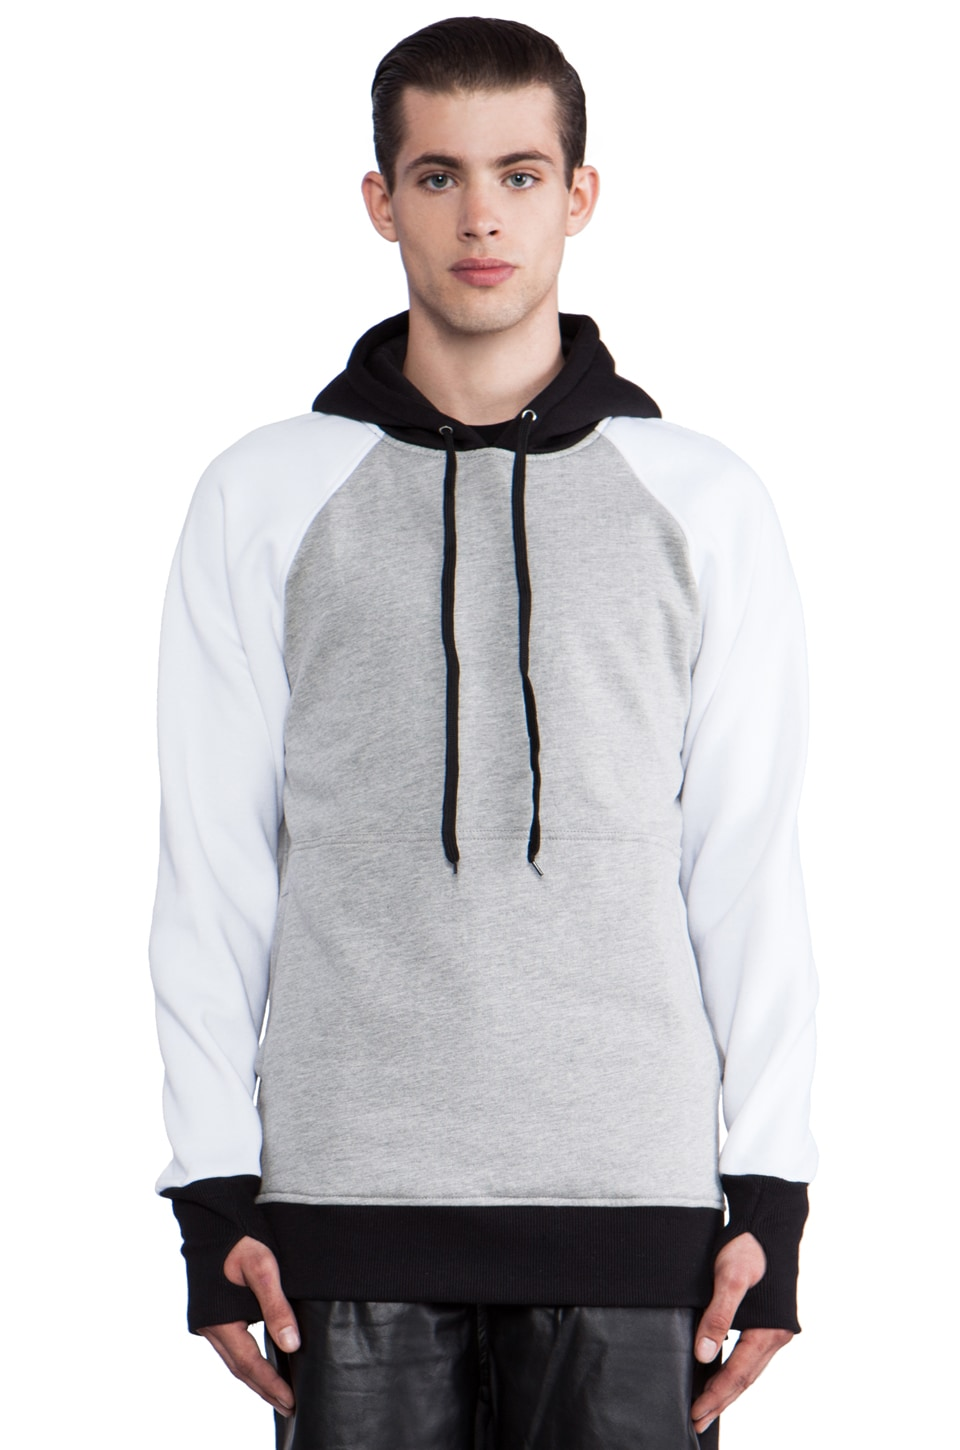 Iridium Pullover Hoodie in Grey & White